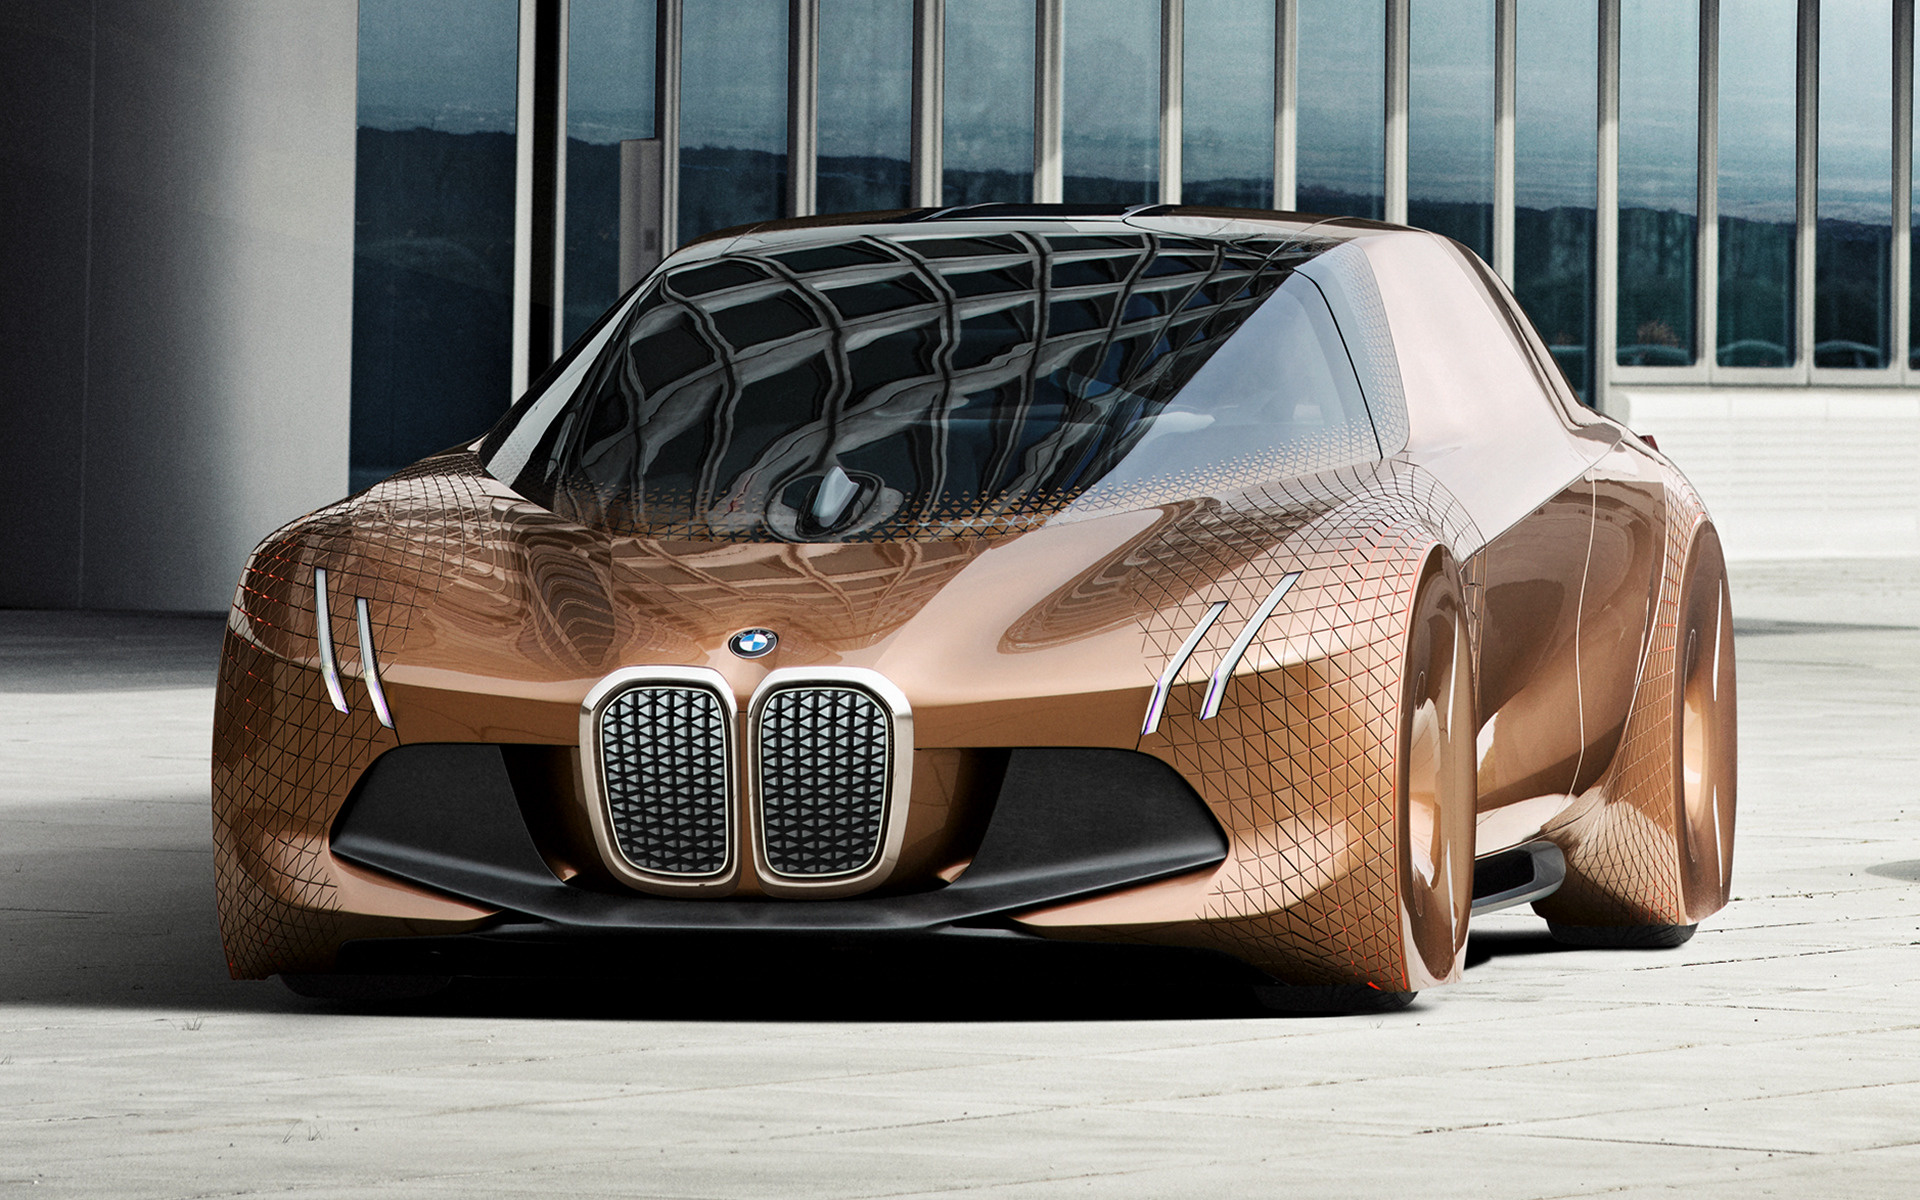 Bmw Vision Next 100 2016 Wallpapers And Hd Images Car HD Style Wallpapers Download free beautiful images and photos HD [prarshipsa.tk]